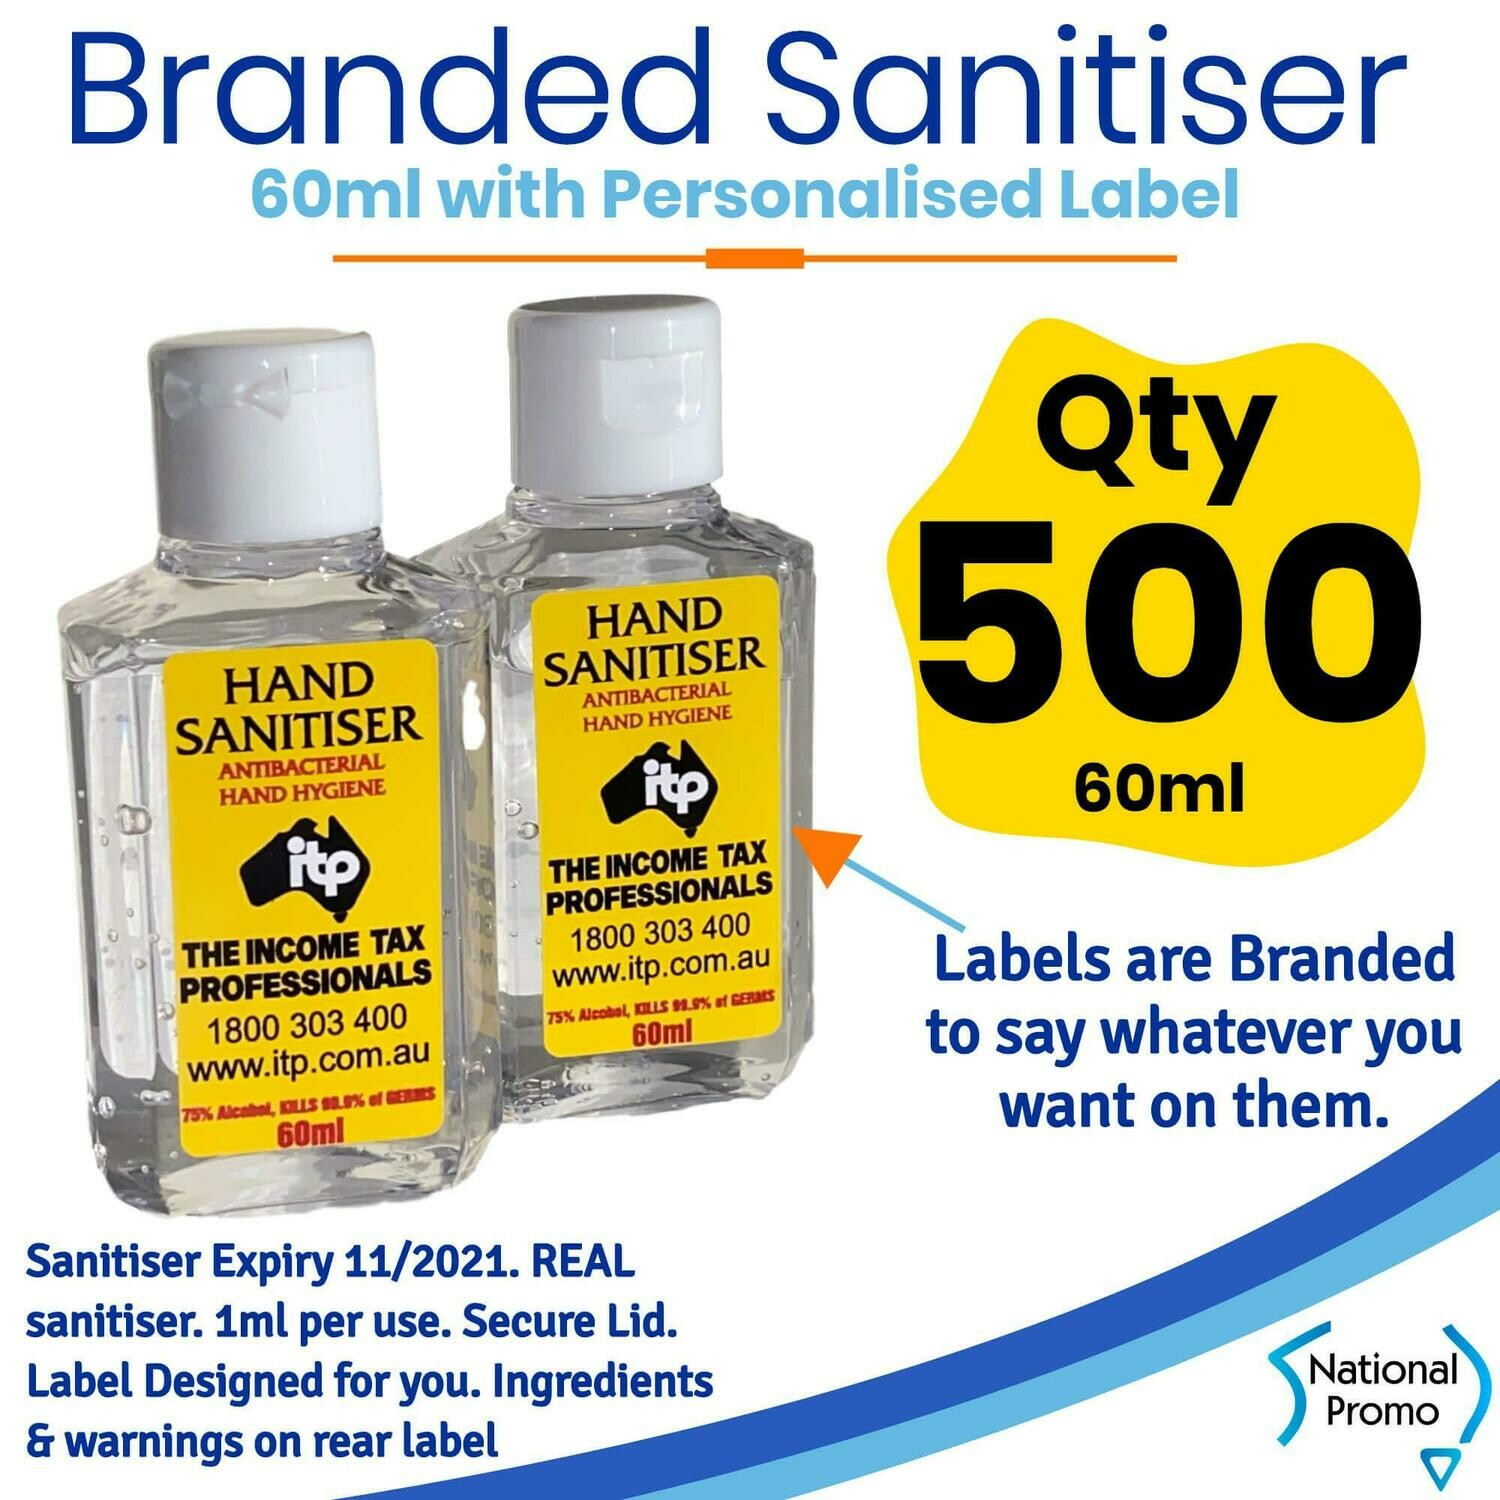 Qty of 500 x 60ml Hand Sanitiser with Personalised Labels